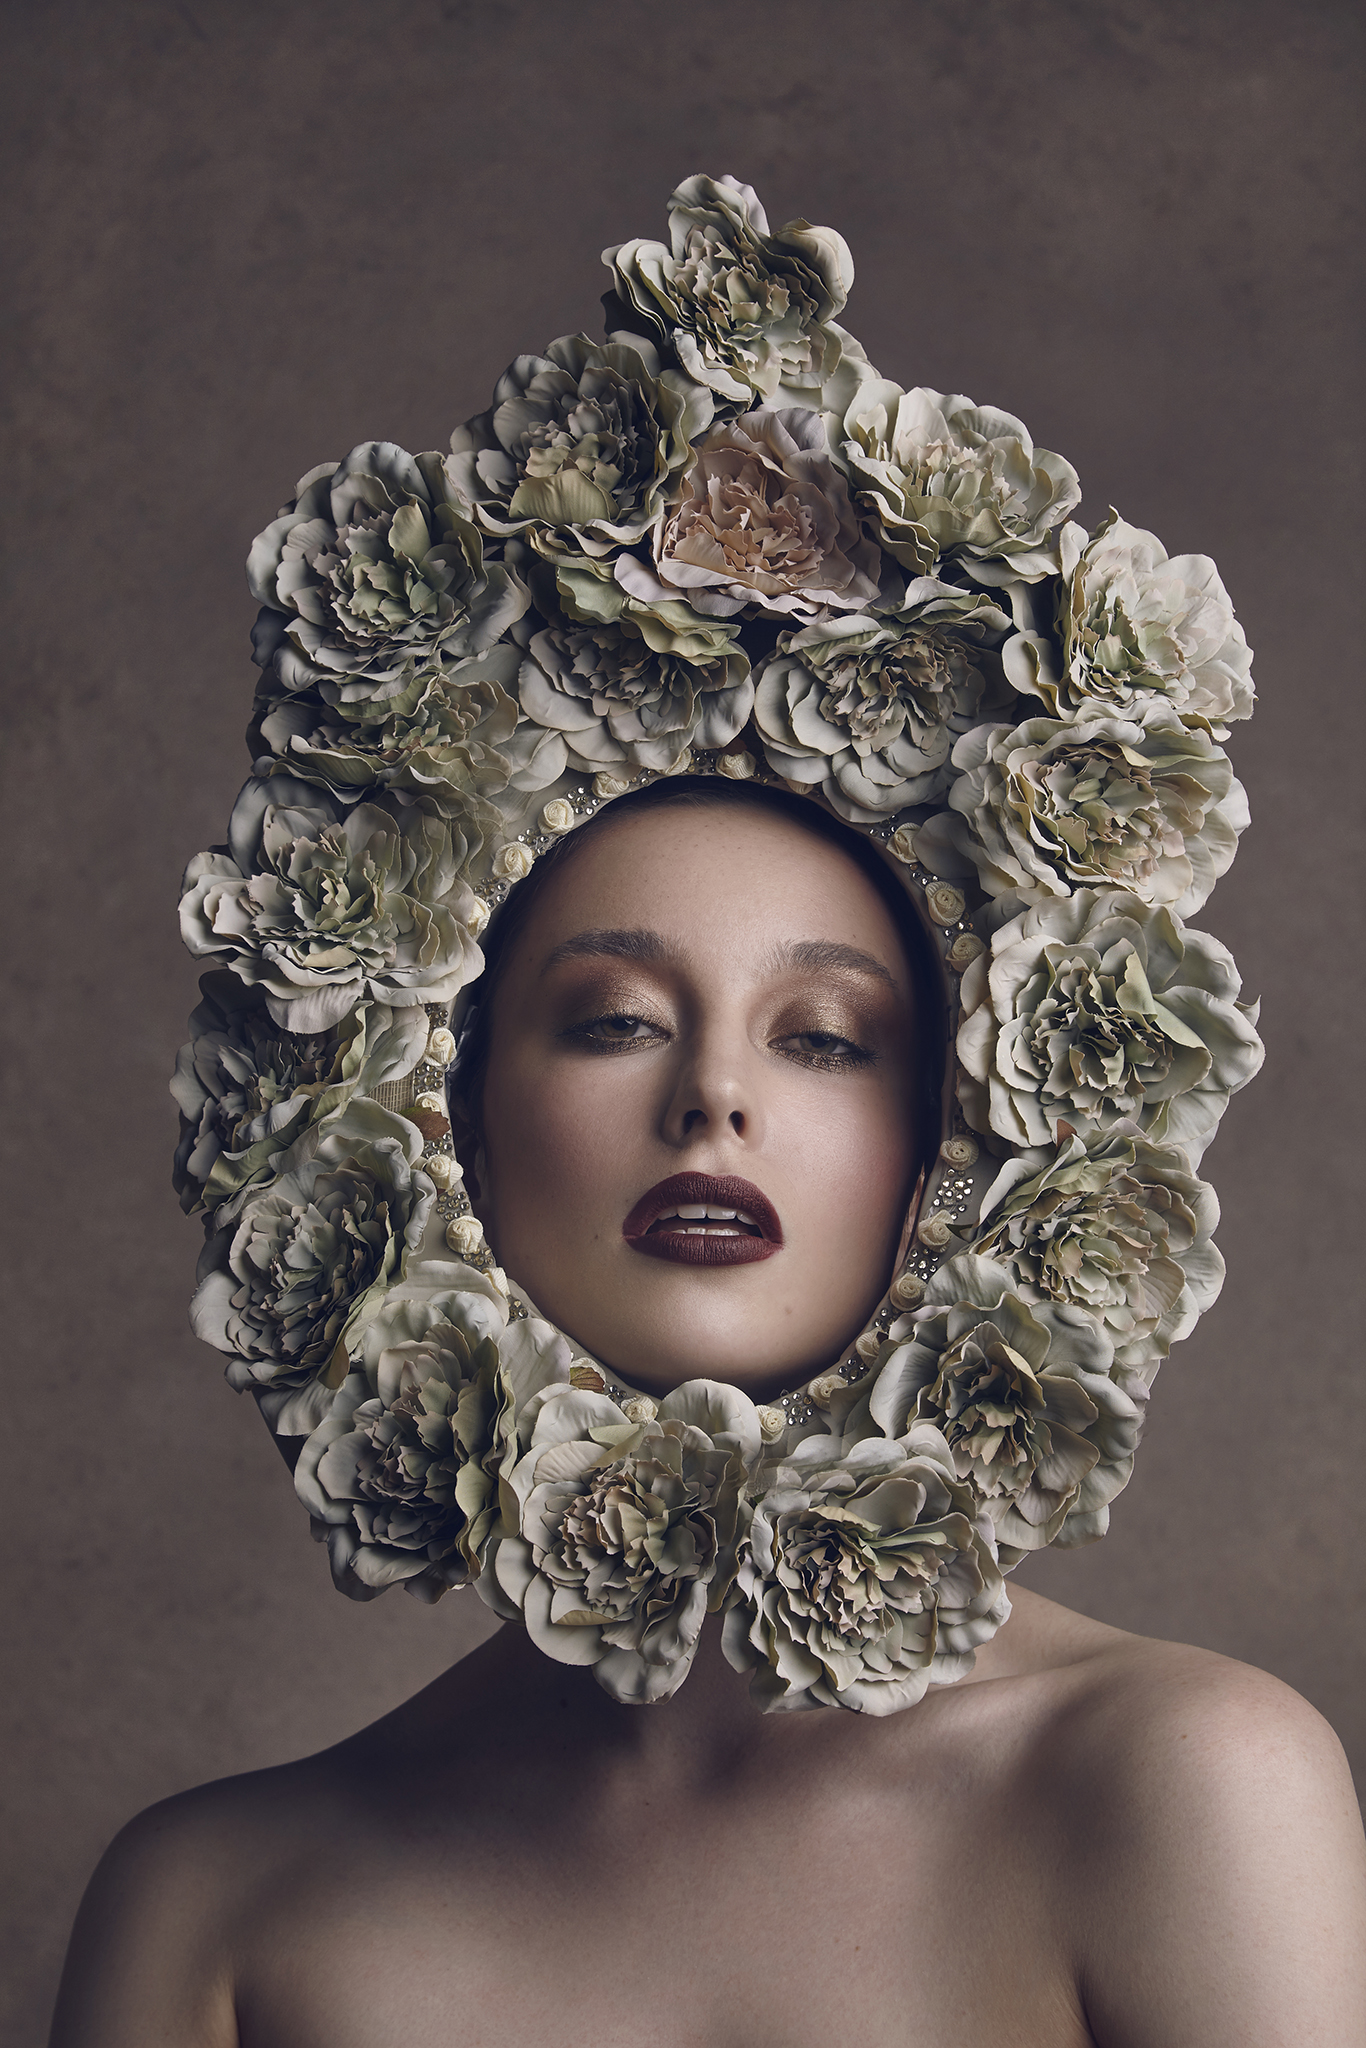 The-Flower-Book-by-Dana-Cole-floral-headpiece-model-fashion-photography-fine-art-photography-beauty-photo-floral-shoot-3.jpg